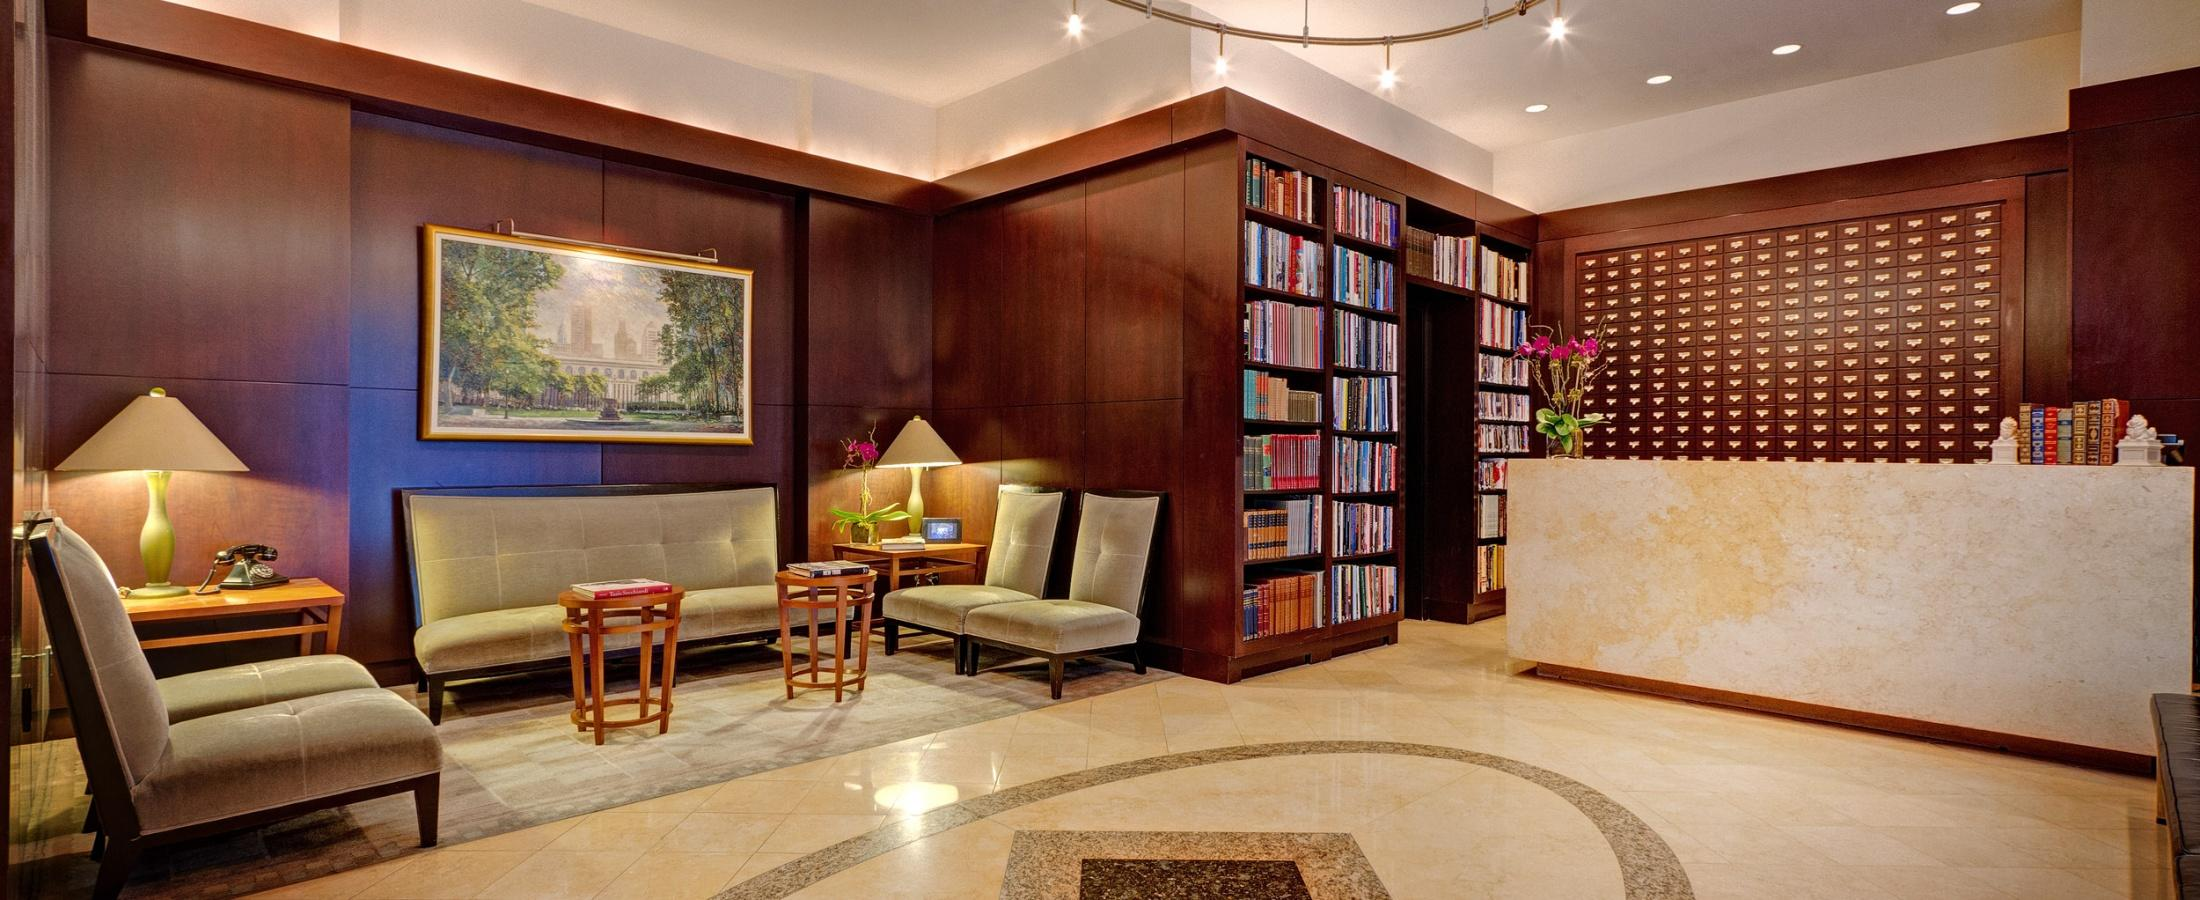 The Library Hotel is home to over 6,000 books throughout our entire hotel and you will find a quarter of them in our hotel lobby.